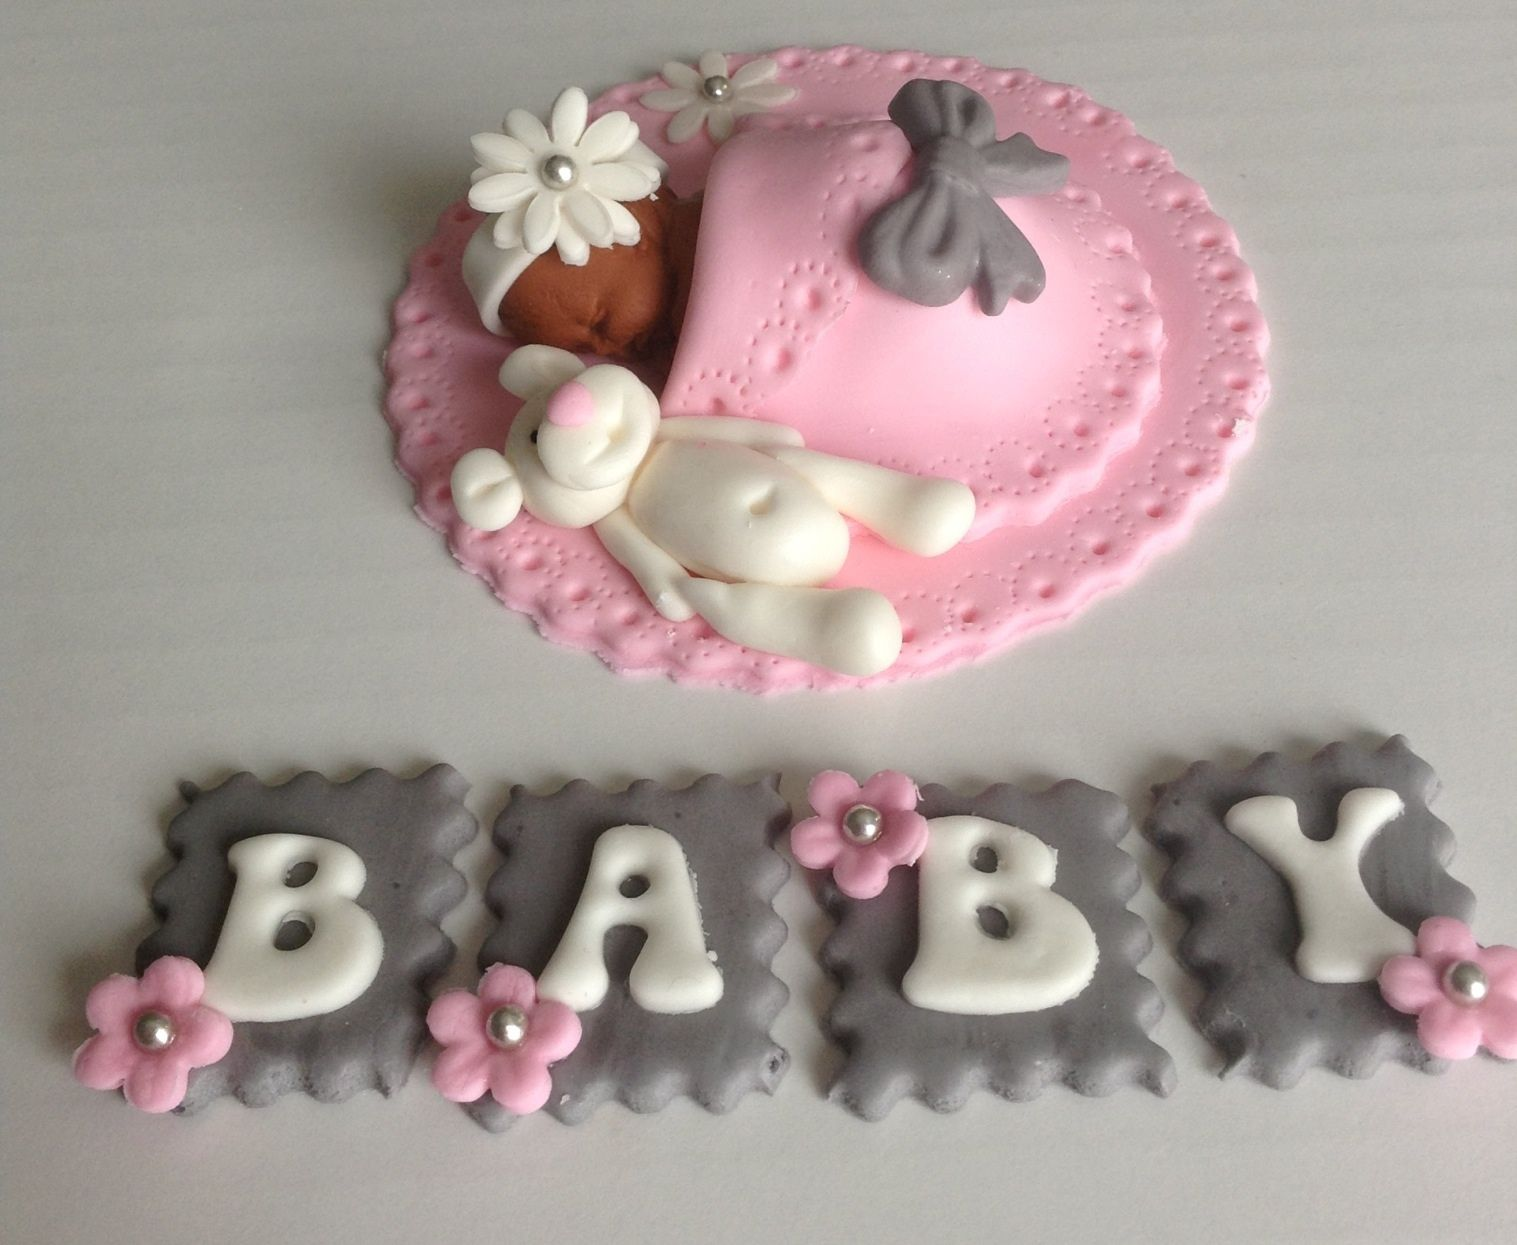 Baby Girl Fondant Baby Shower Cake With Elephants   Google Search